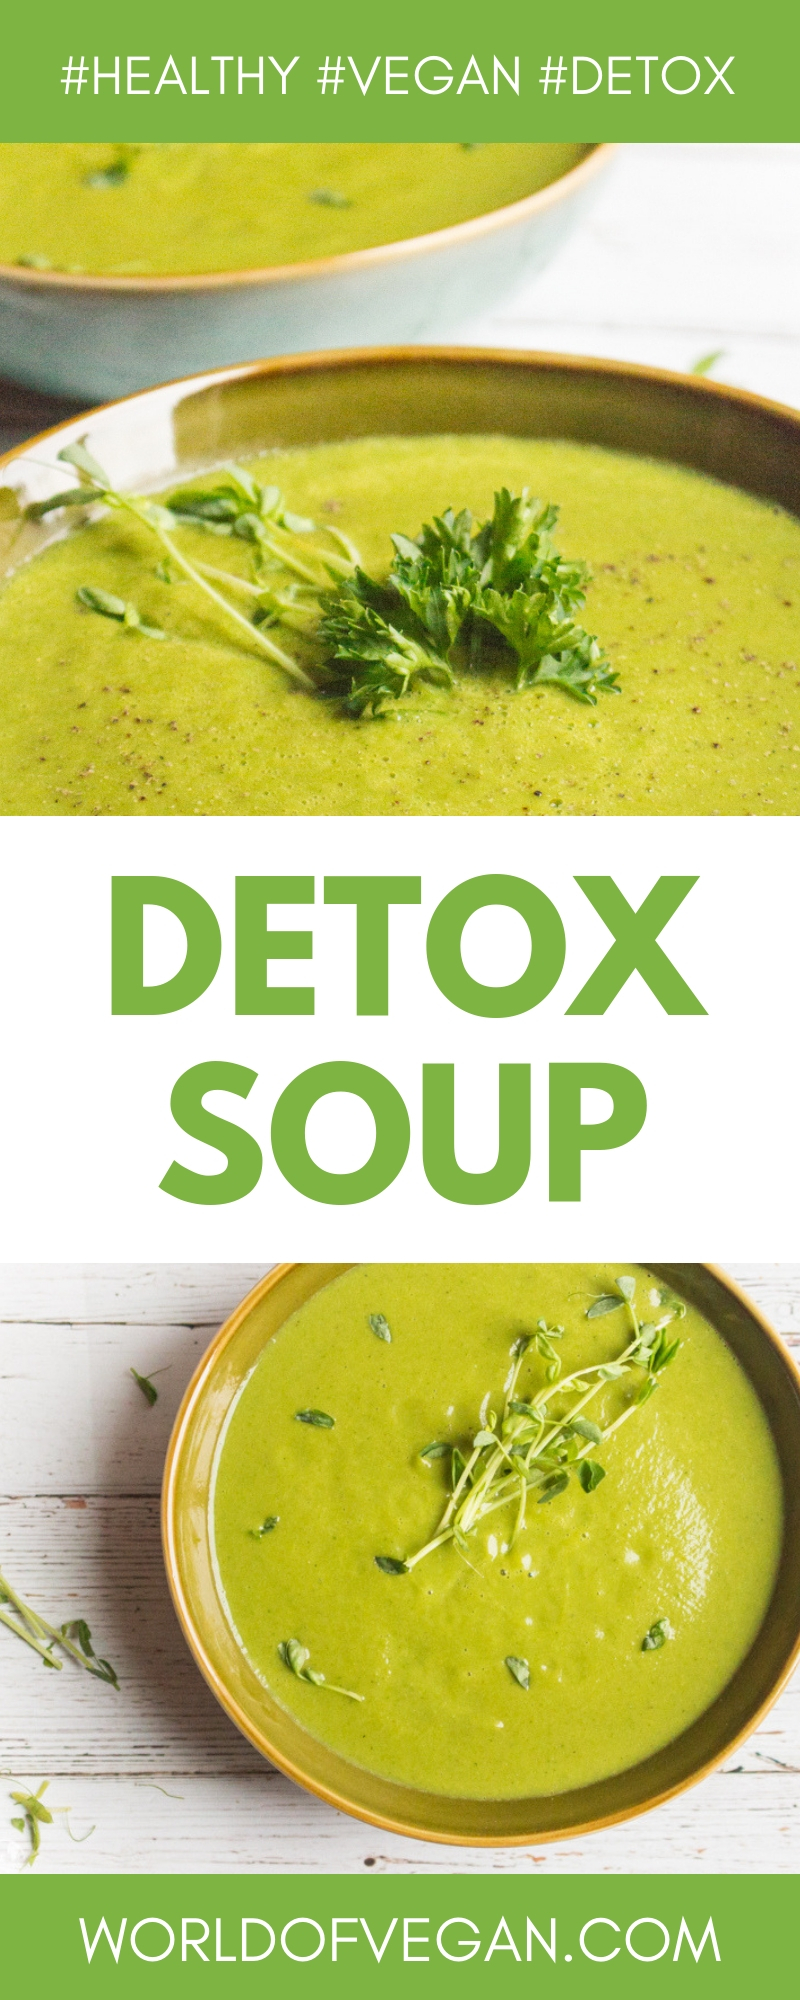 Cleansing Soup | Green Detox Soup | World of Vegan | #vegan #soup #detox #cleanse #healthy #parsley